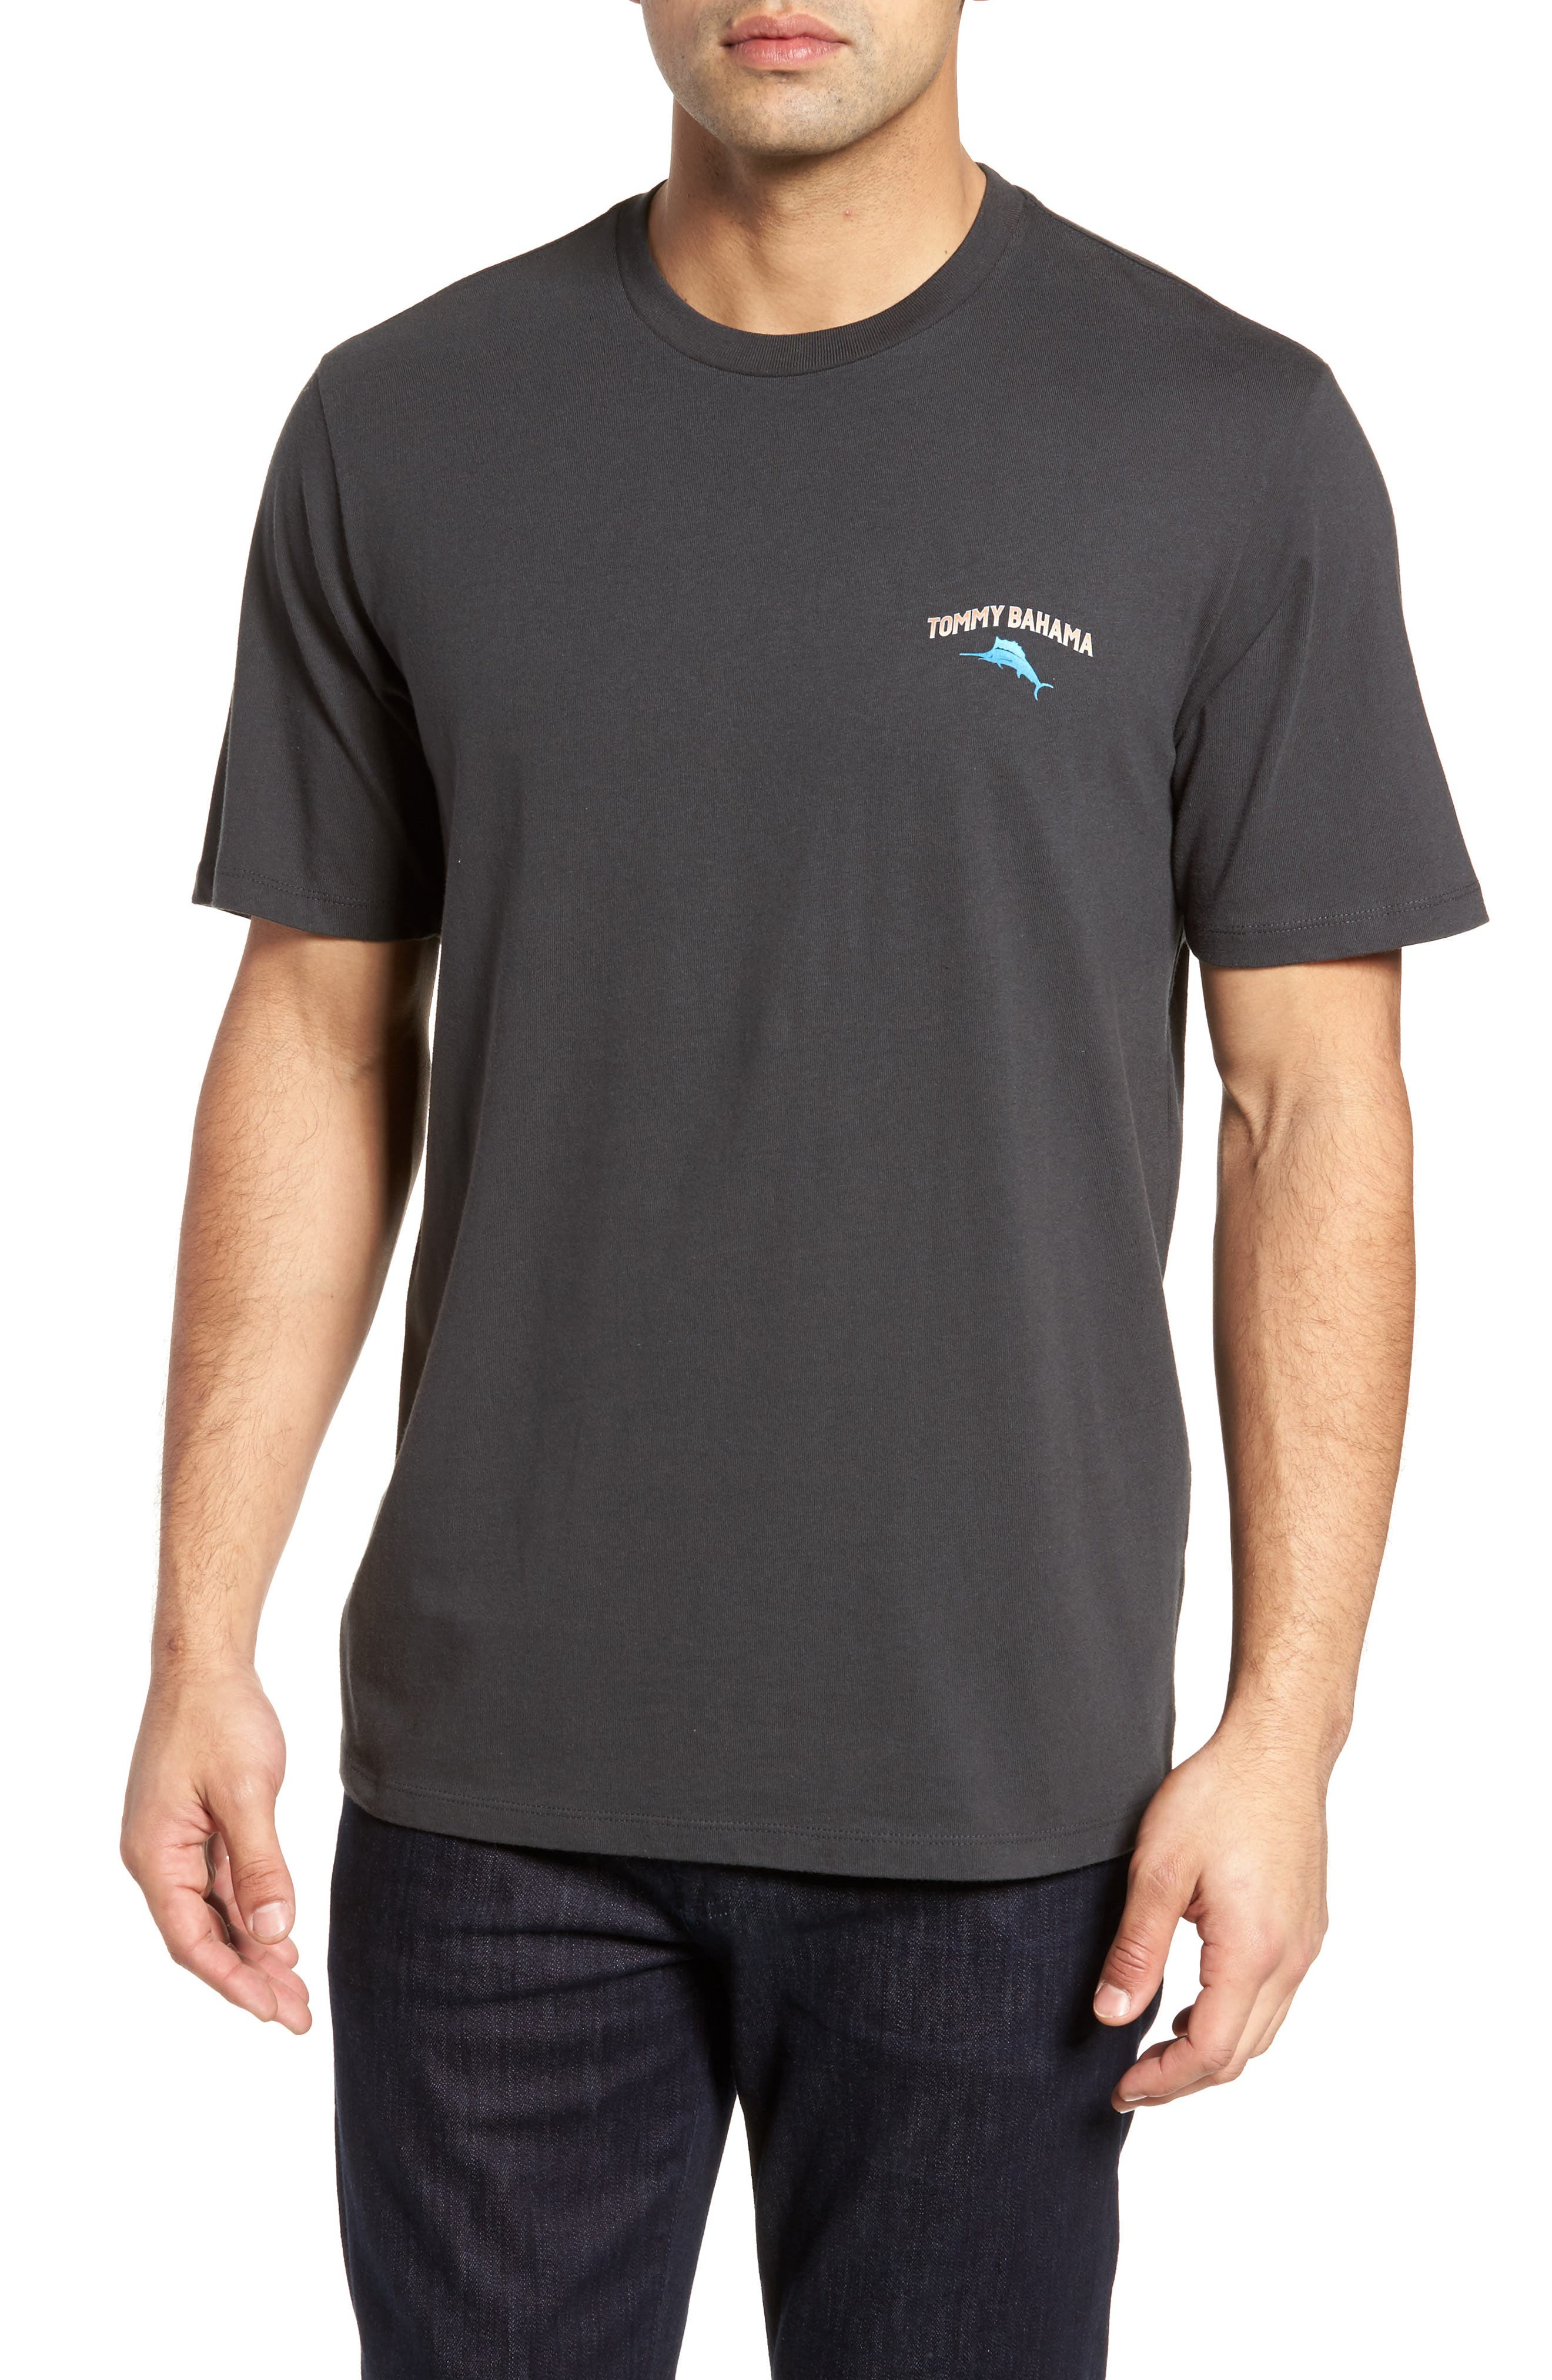 Tommy Bahama Cab Legs Graphic T-Shirt